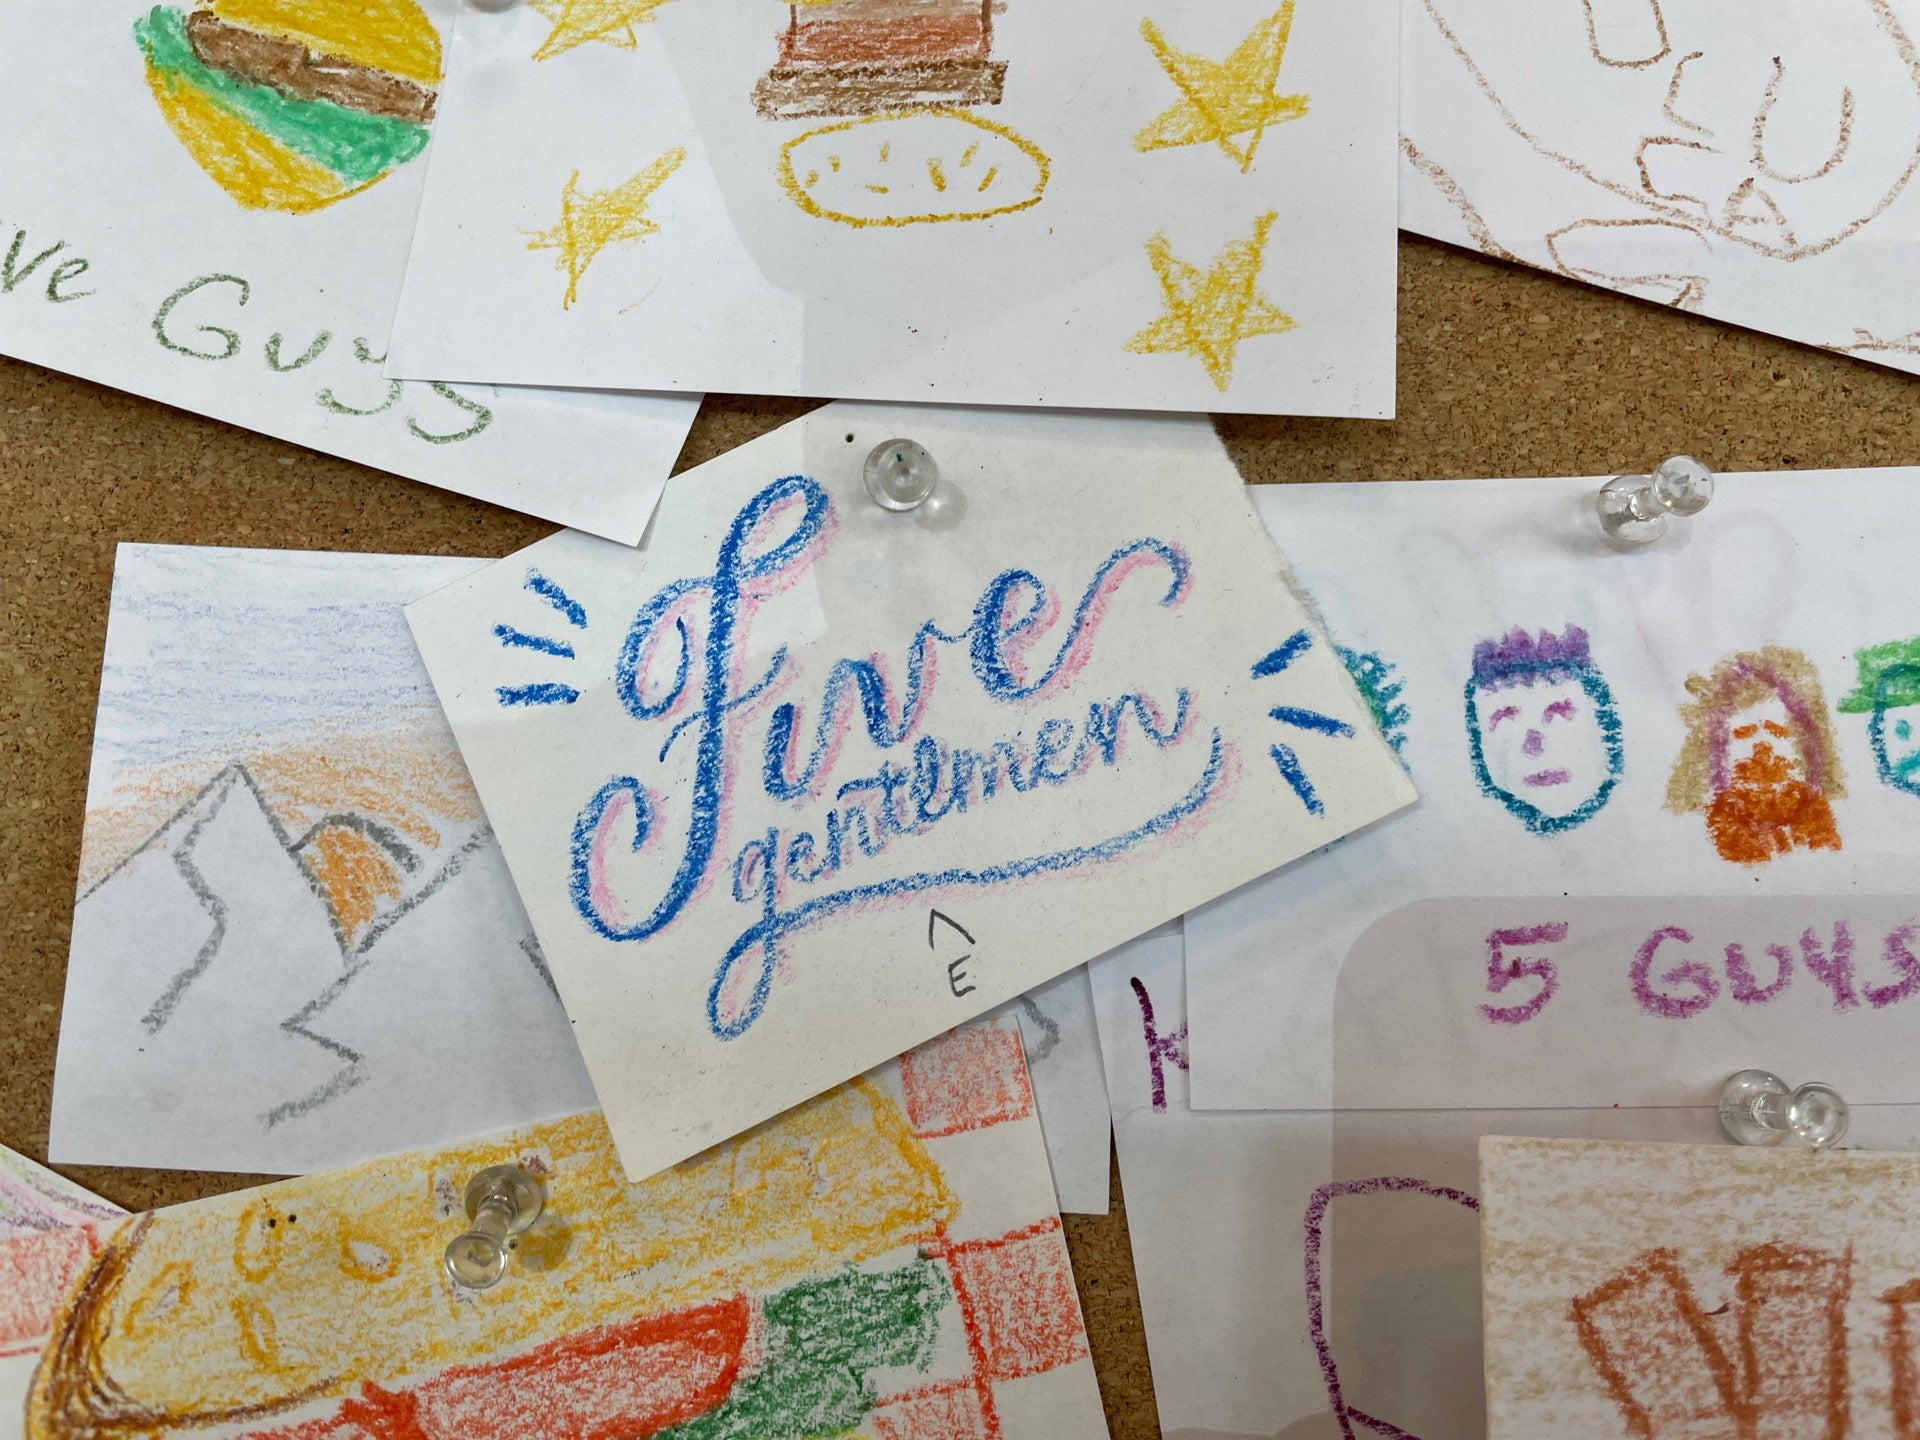 Checked in at Five Guys